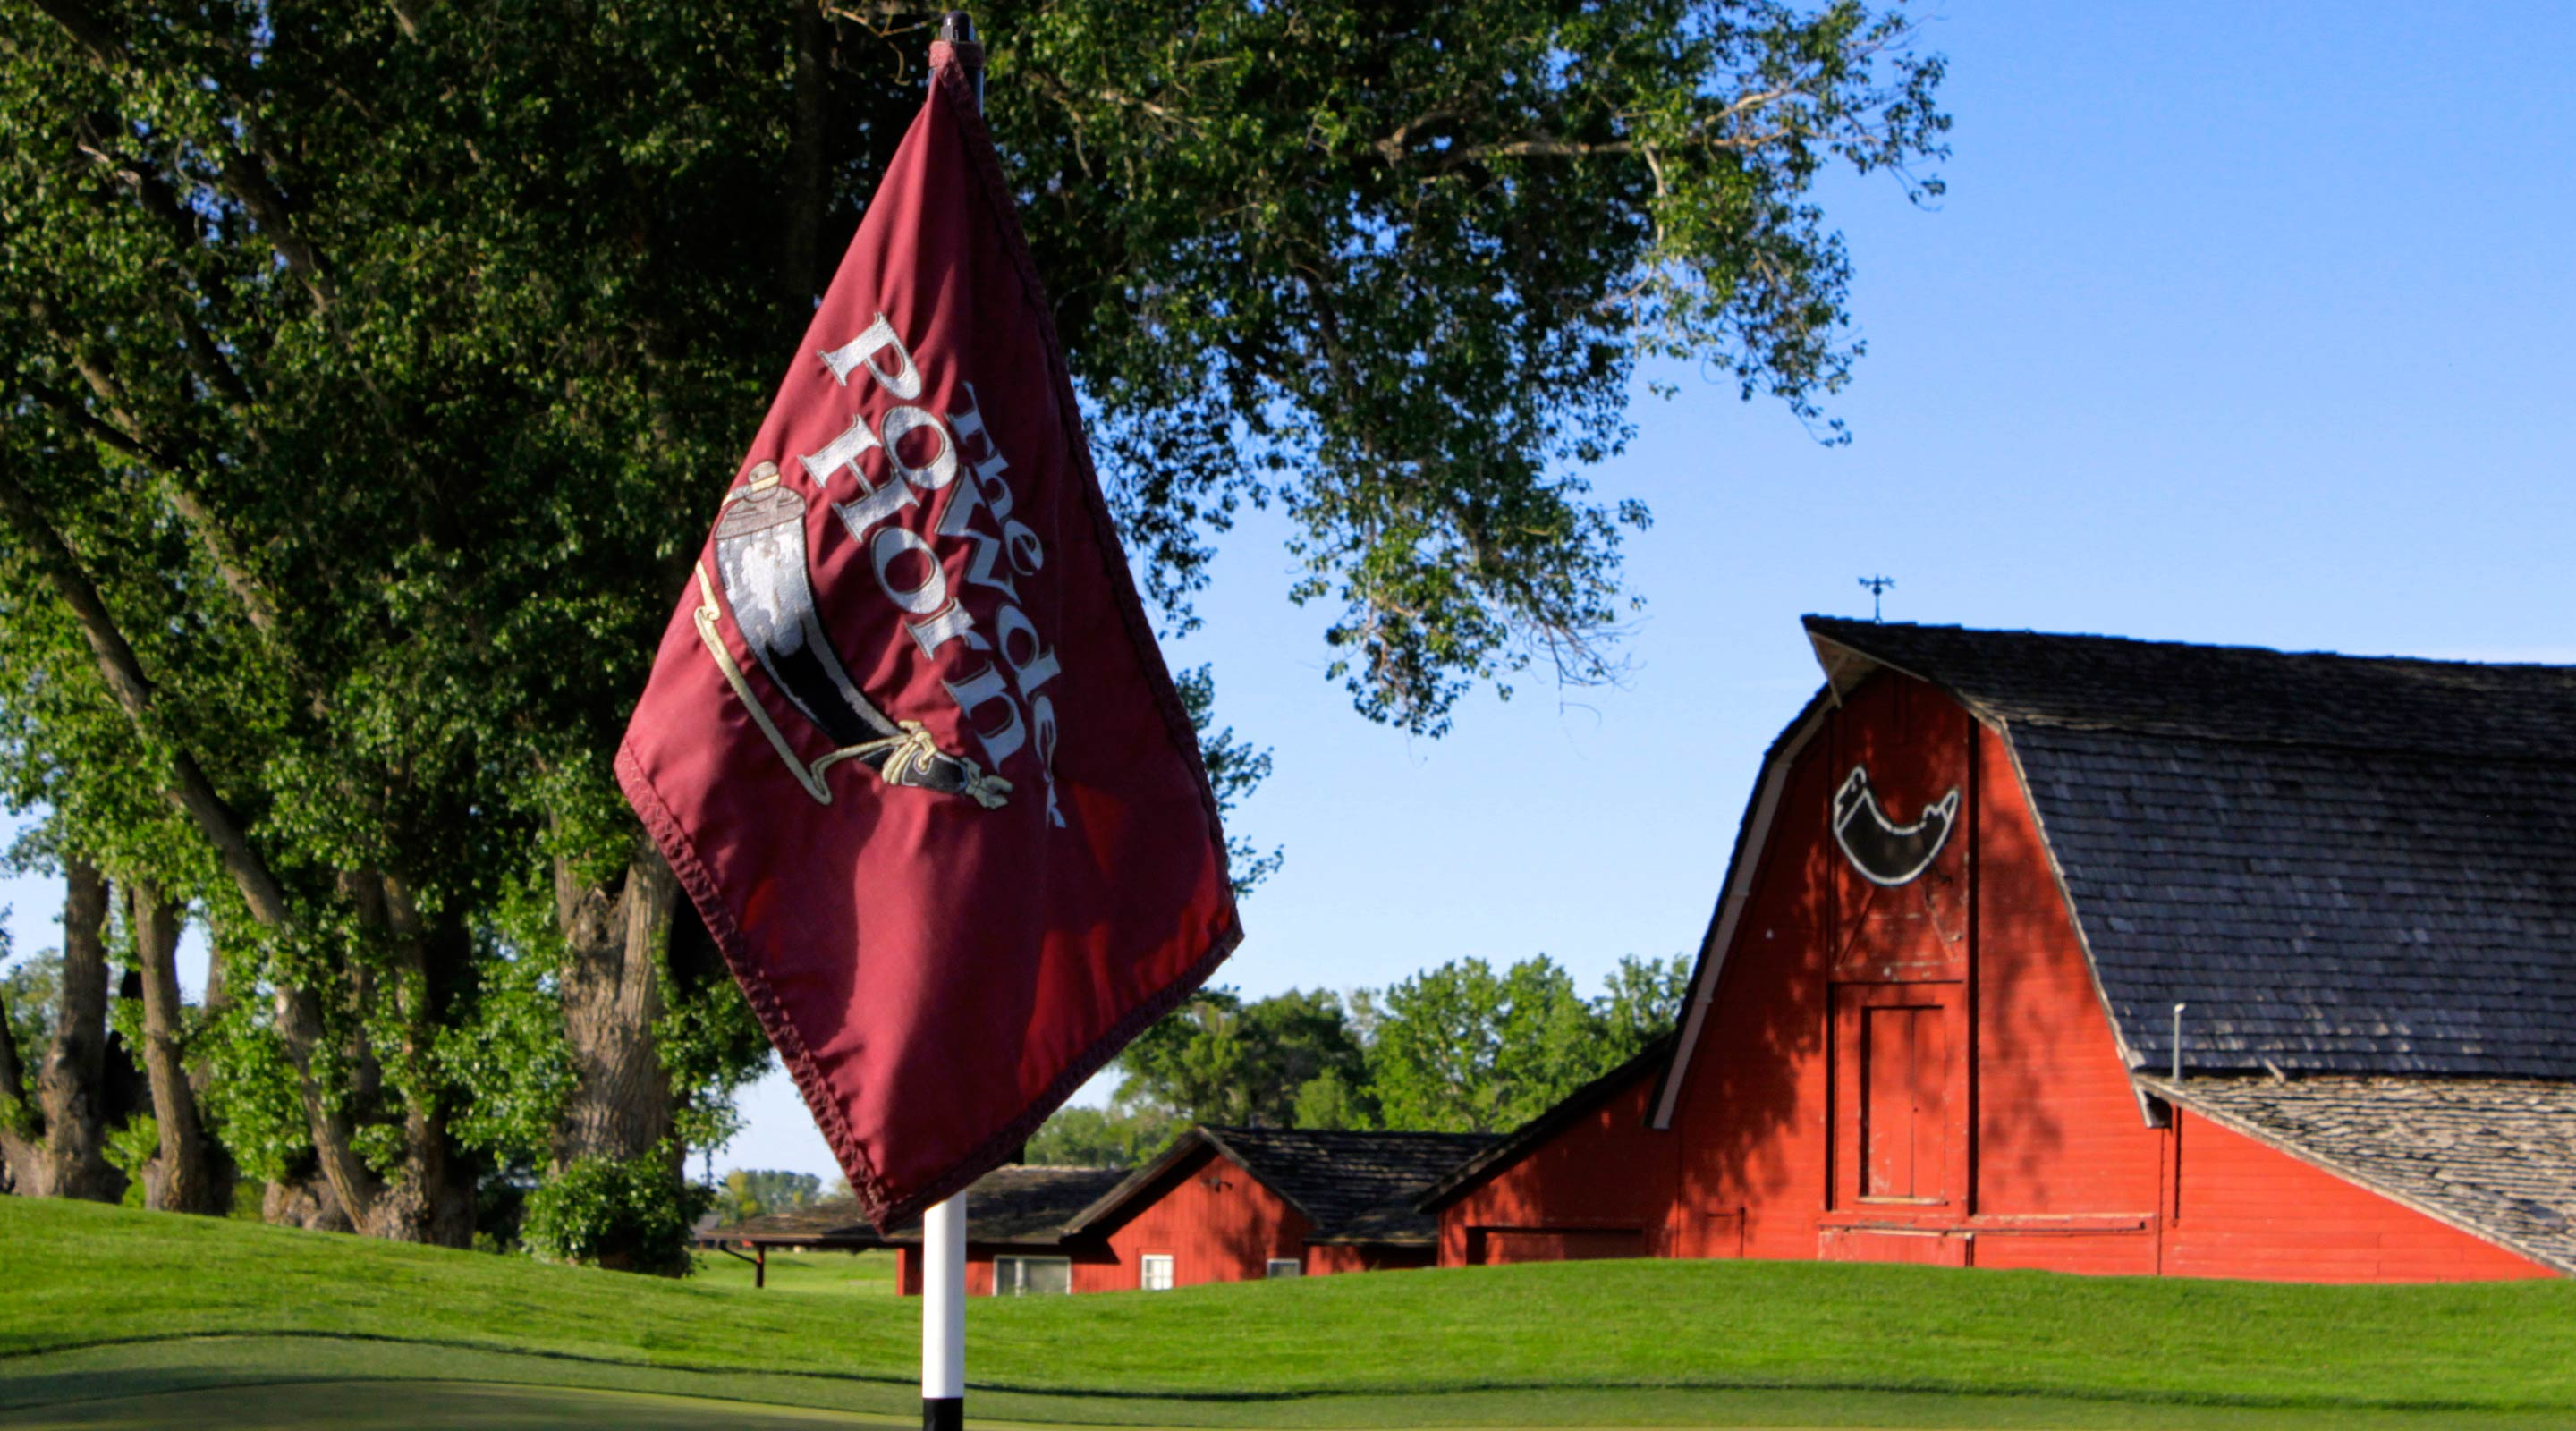 The Powder Horn barn Flag